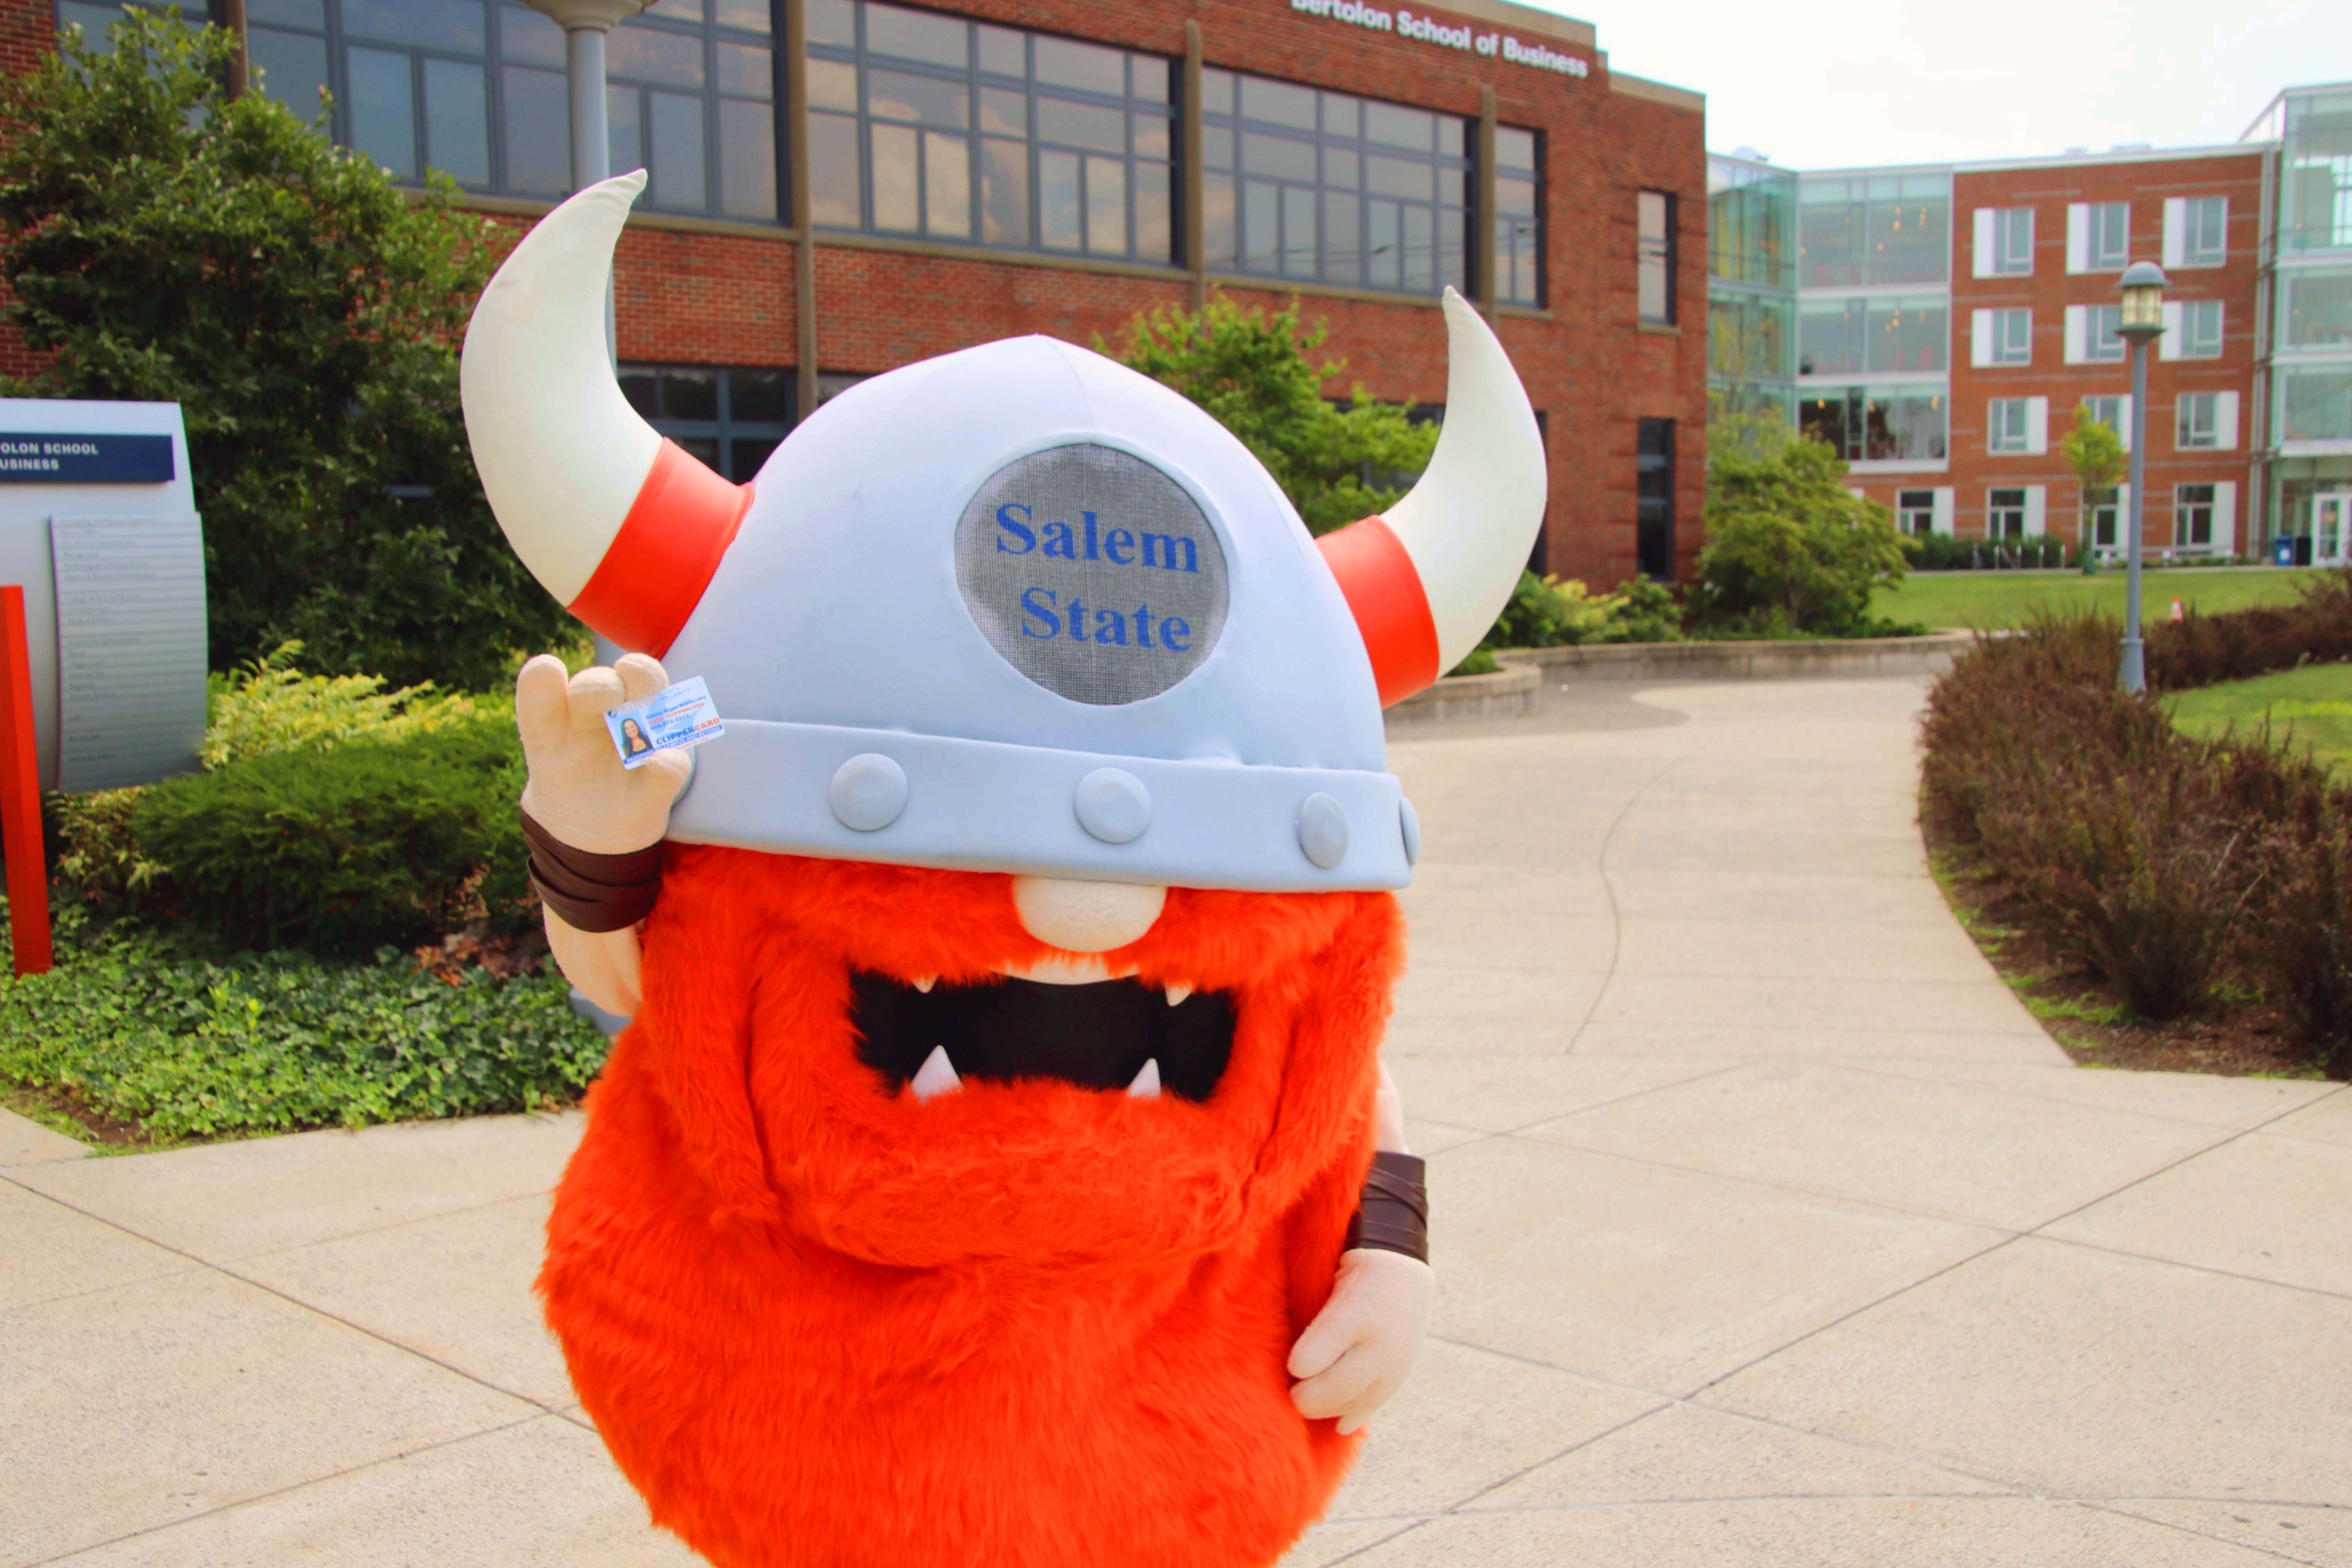 Superfan stands in front of the Bertolon School of Business holding a ClipperCard.